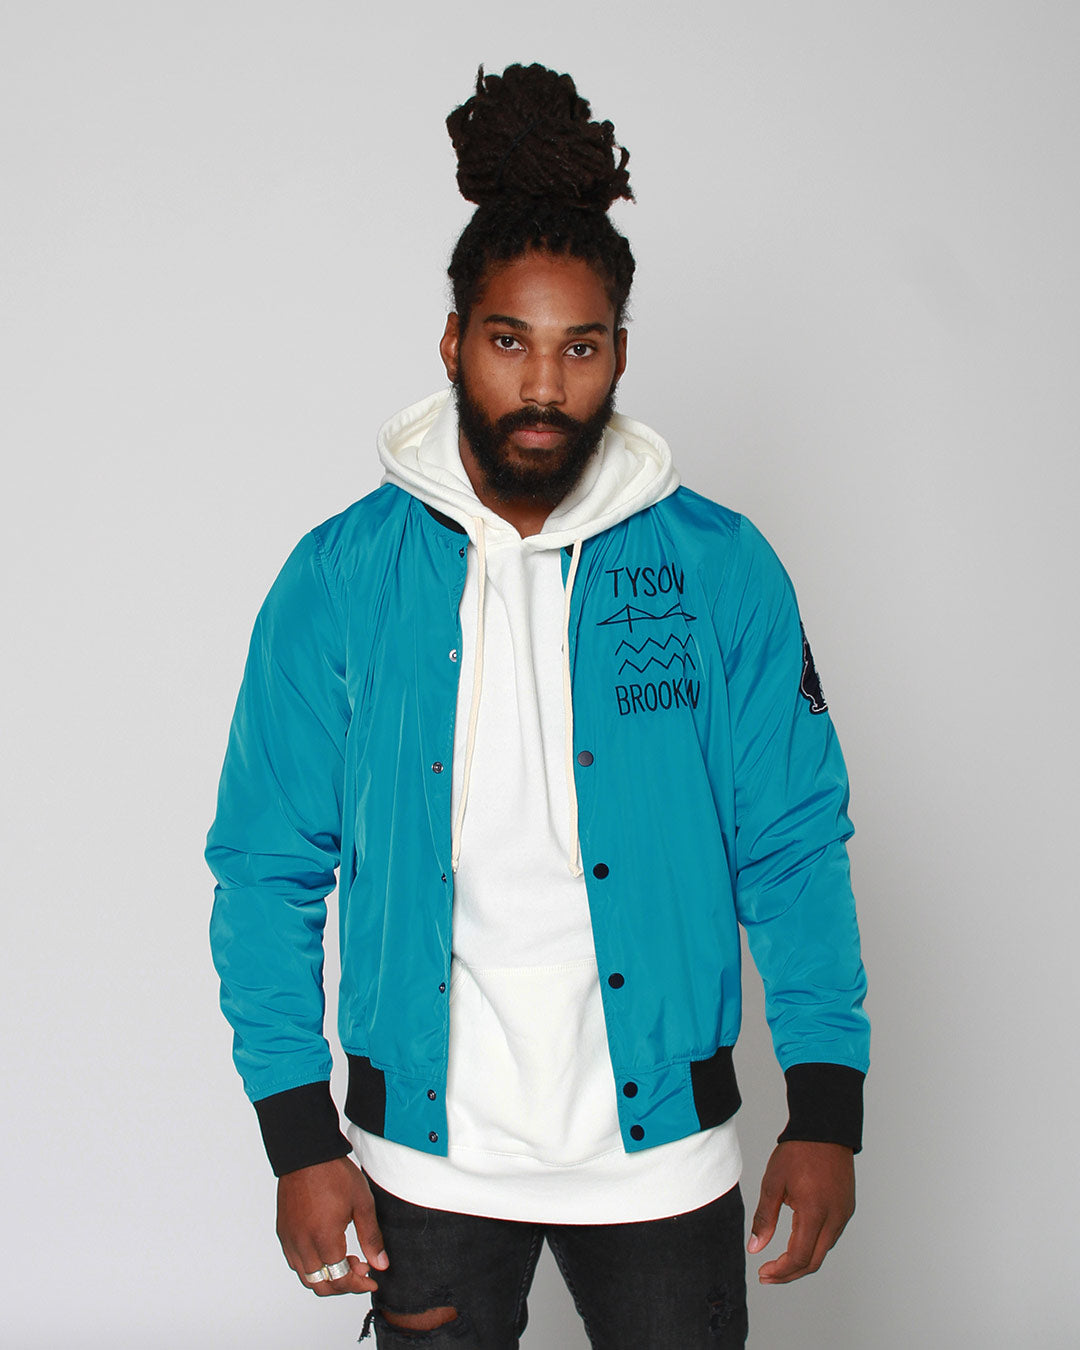 Tyson Brooklyn 'Be Real' Stadium Jacket